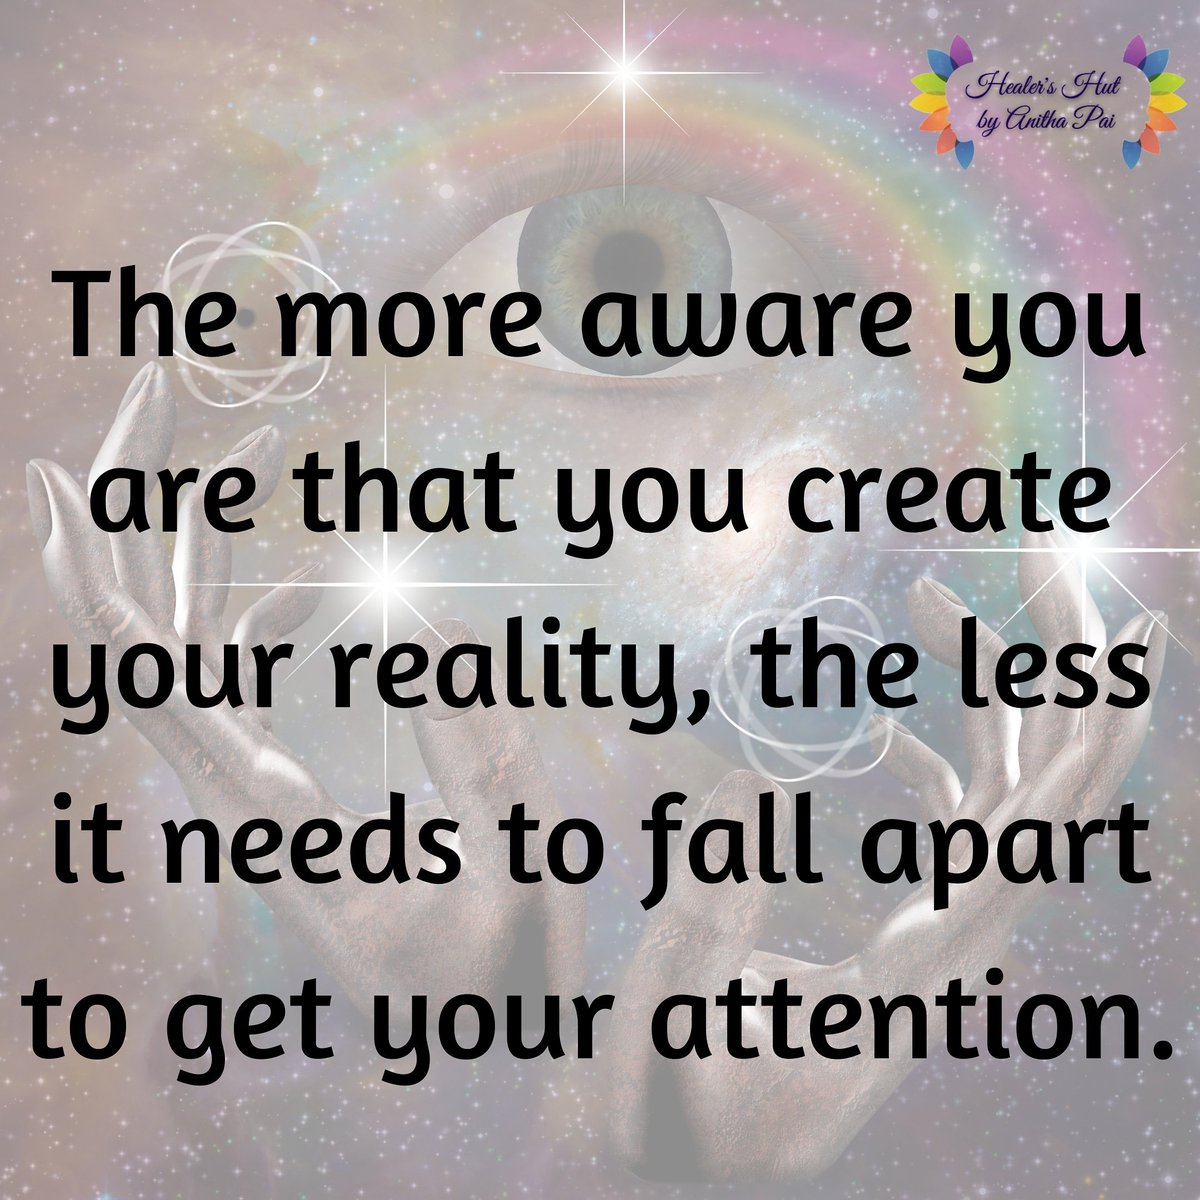 #healershutbyanithapai #awareness #reality #attention #aware #selfawareness #selflove #universequotes #universe #instapost #instadaily #instapic